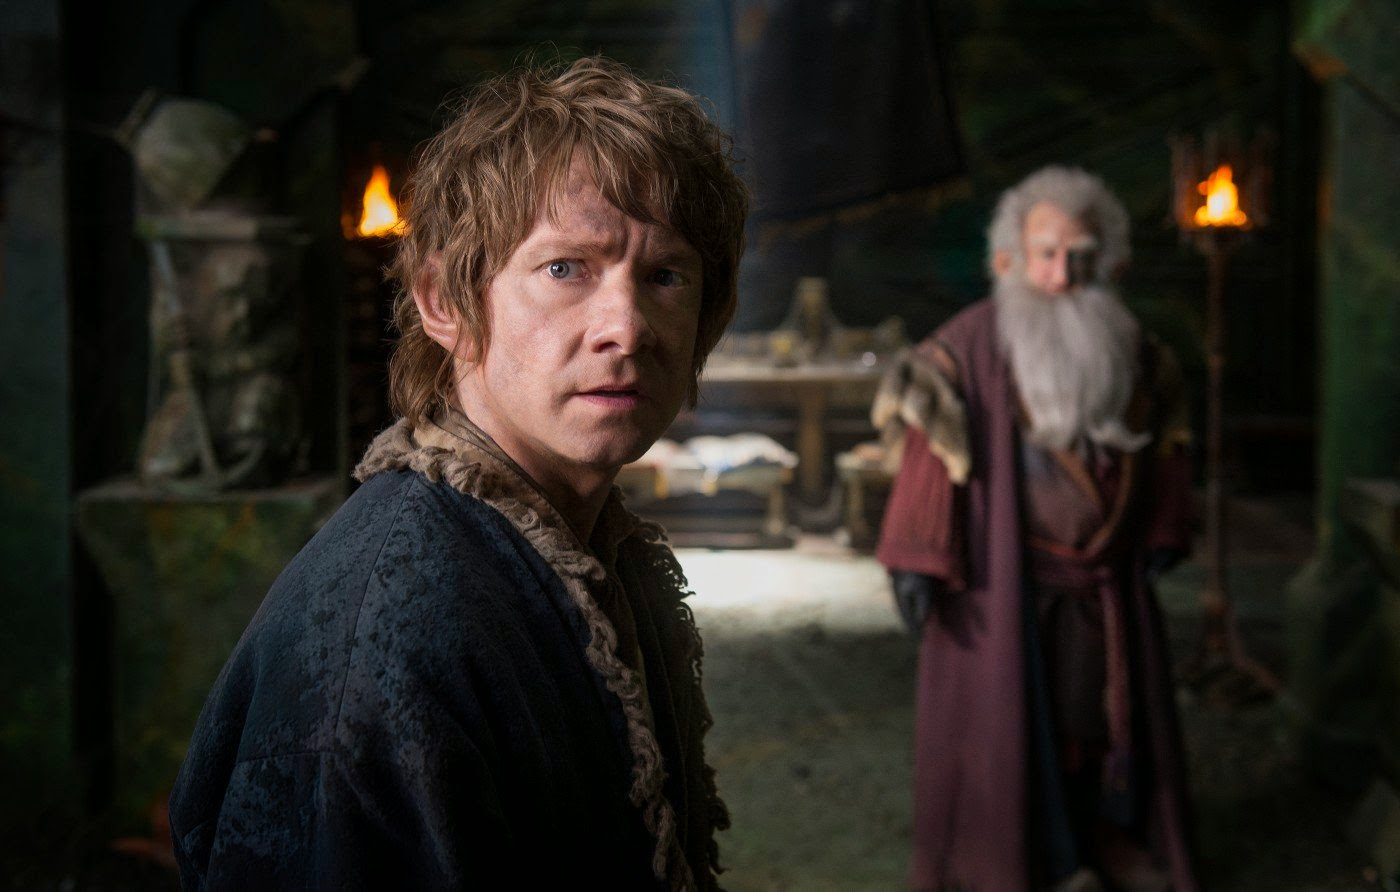 Martin Freeman and Ken Stott in The Hobbit: The Battle of the Five Armies